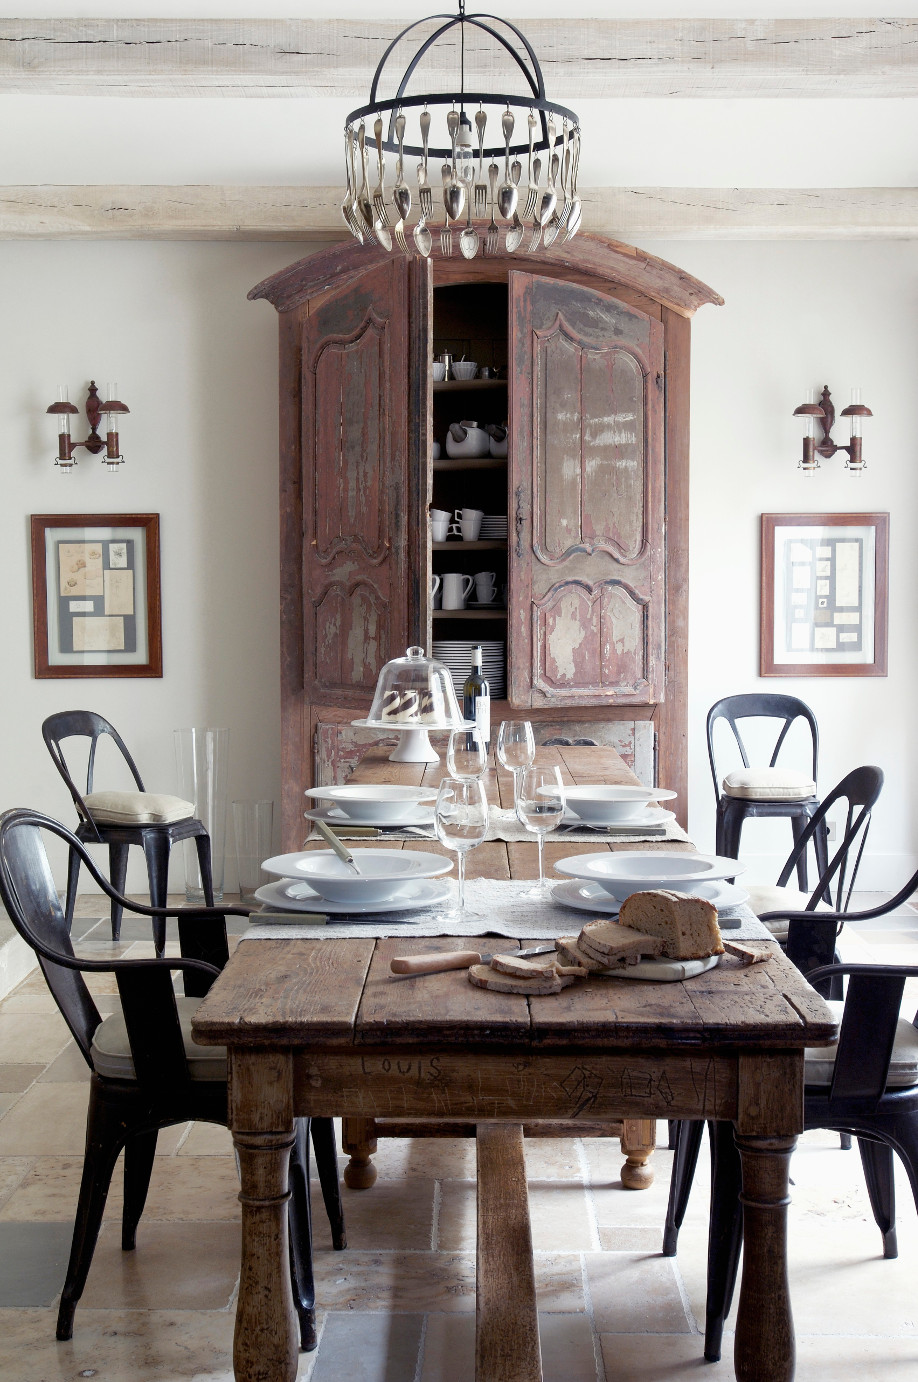 westwing-style-country-glamour